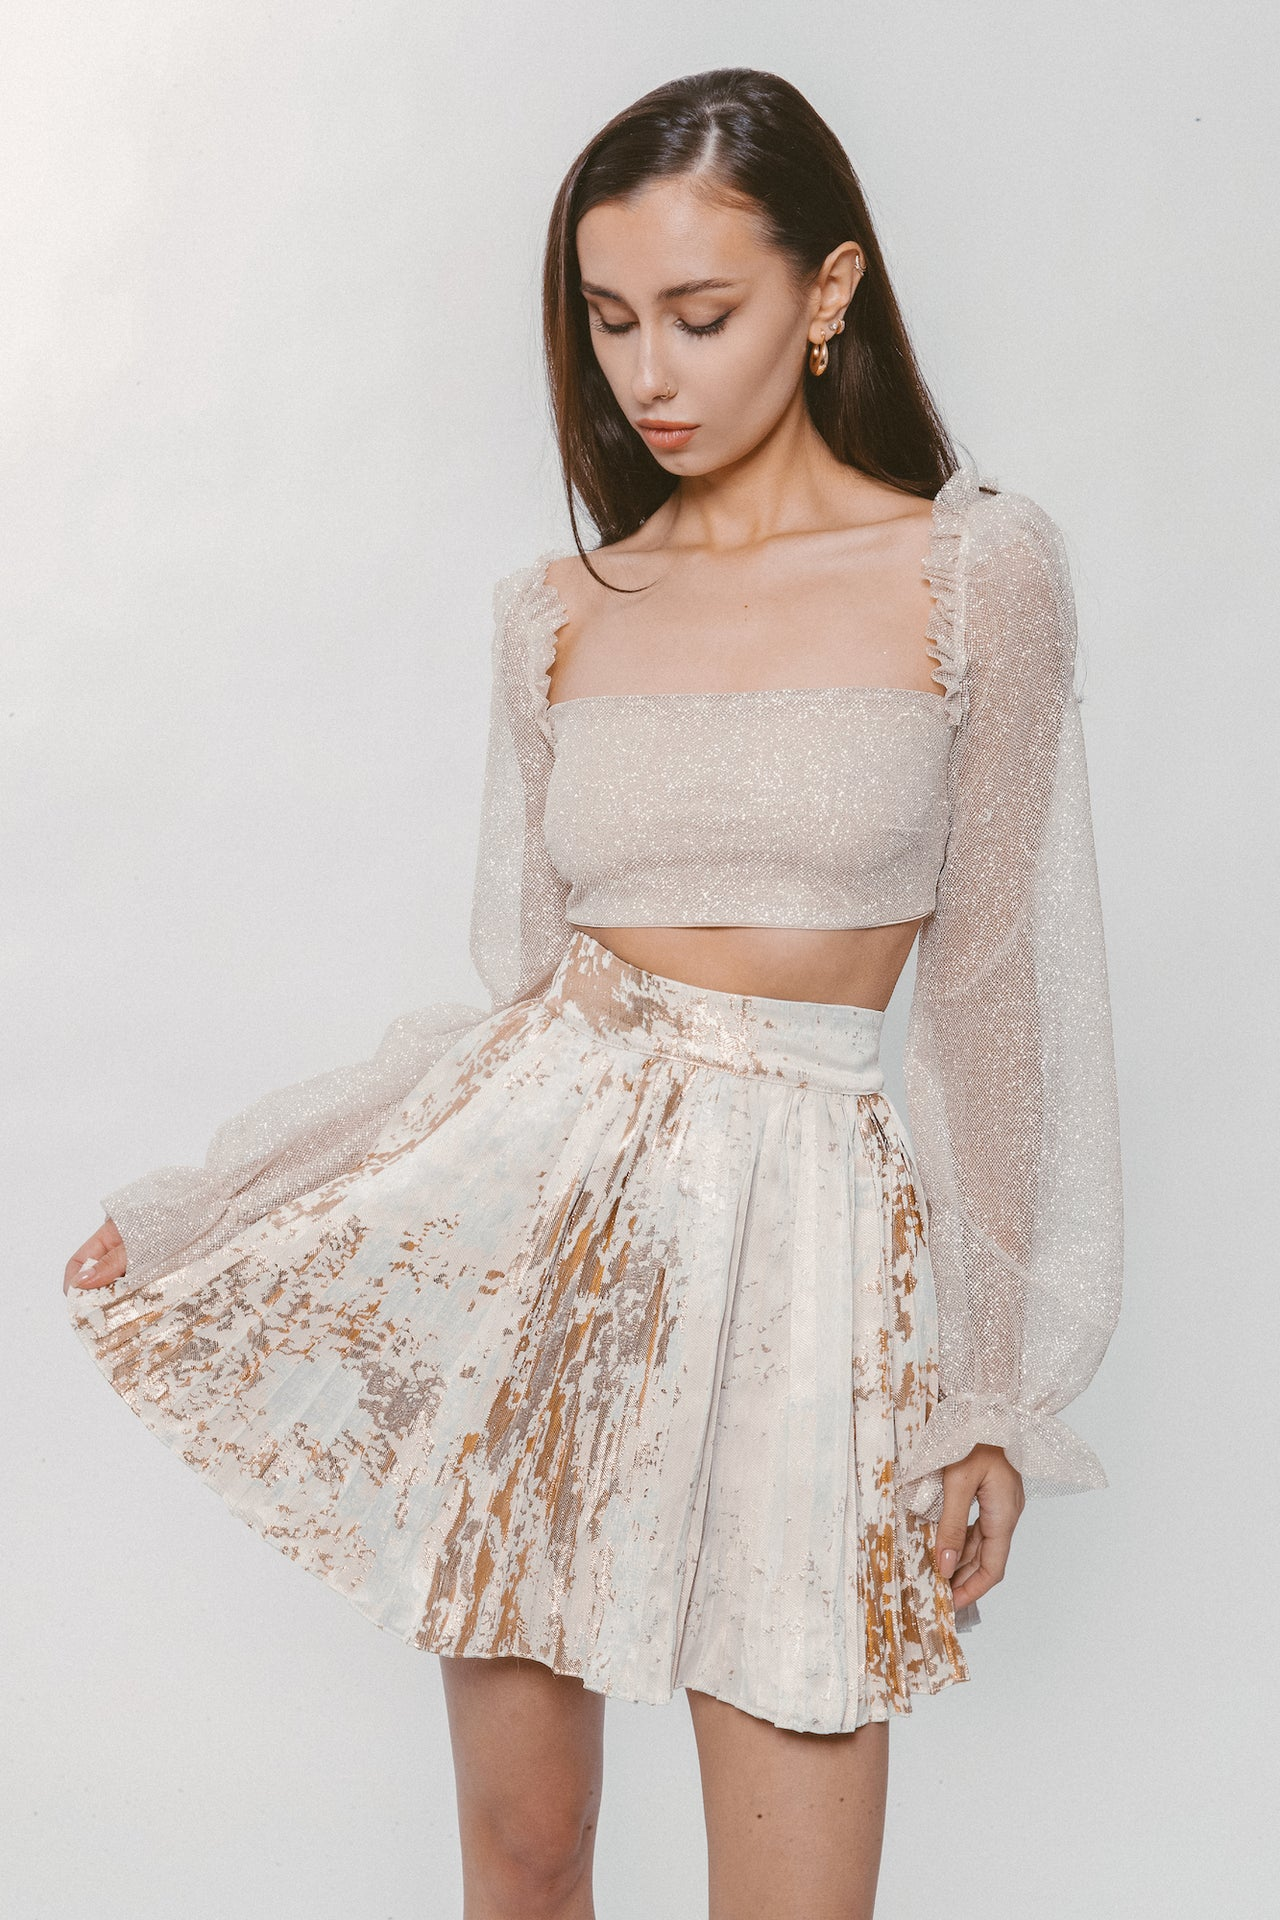 GOLD PLEATED SKIRT - Lurelly